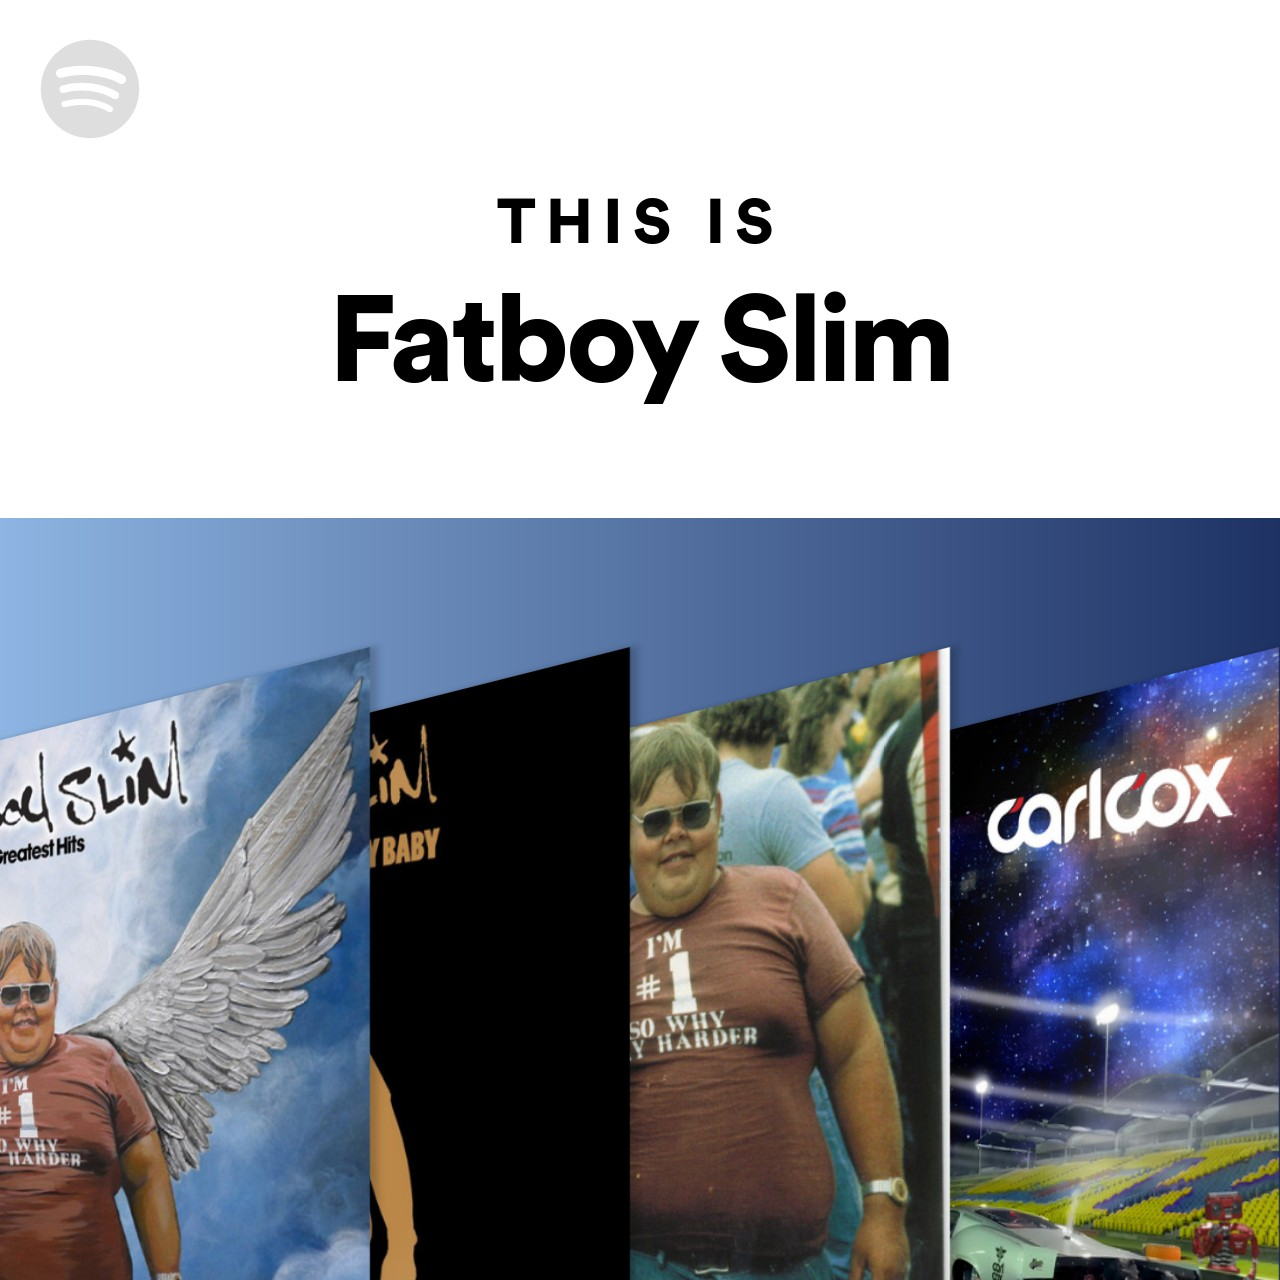 This Is Fatboy Slimのサムネイル